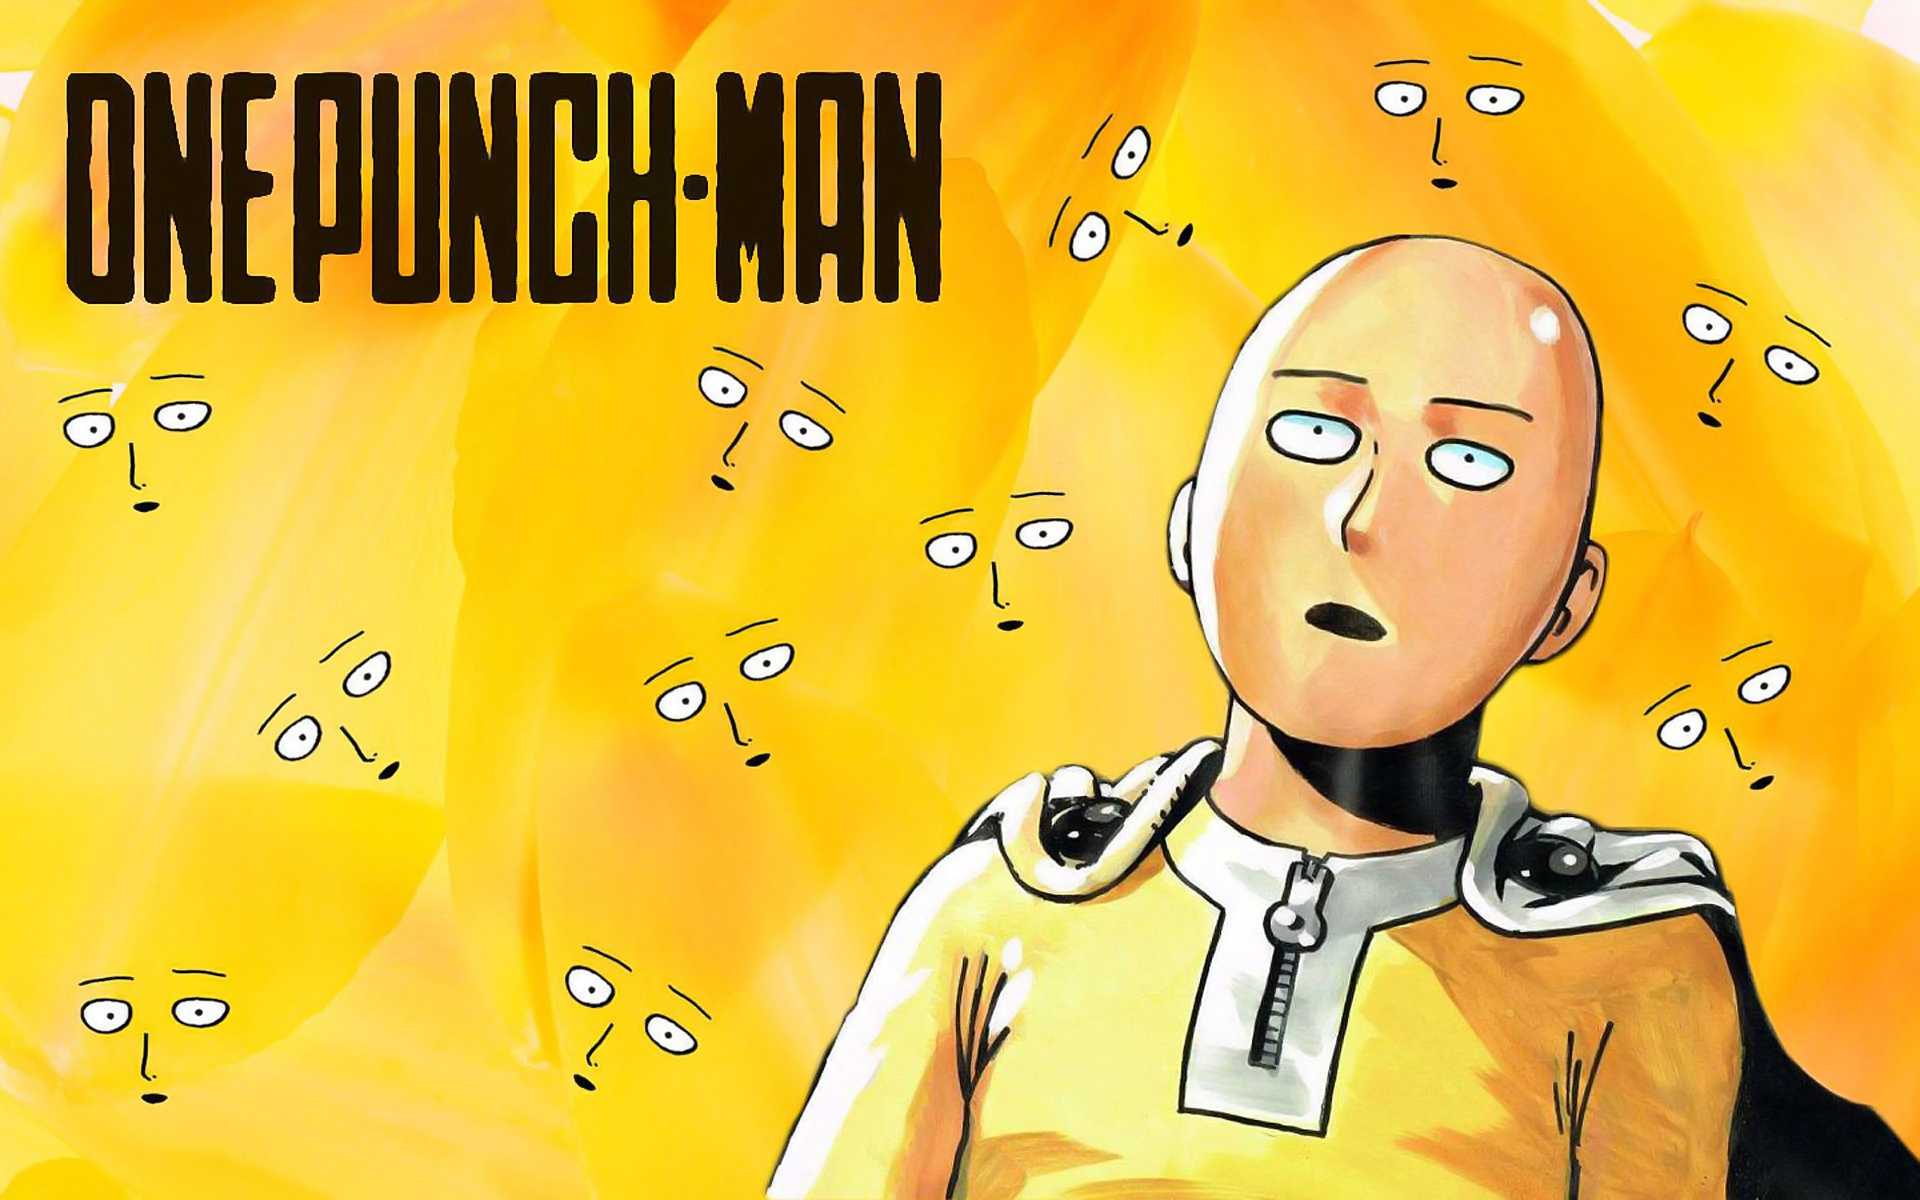 Funny-Face-Saitama-One-Punch-Man-Wallpaper-HD-KGH001